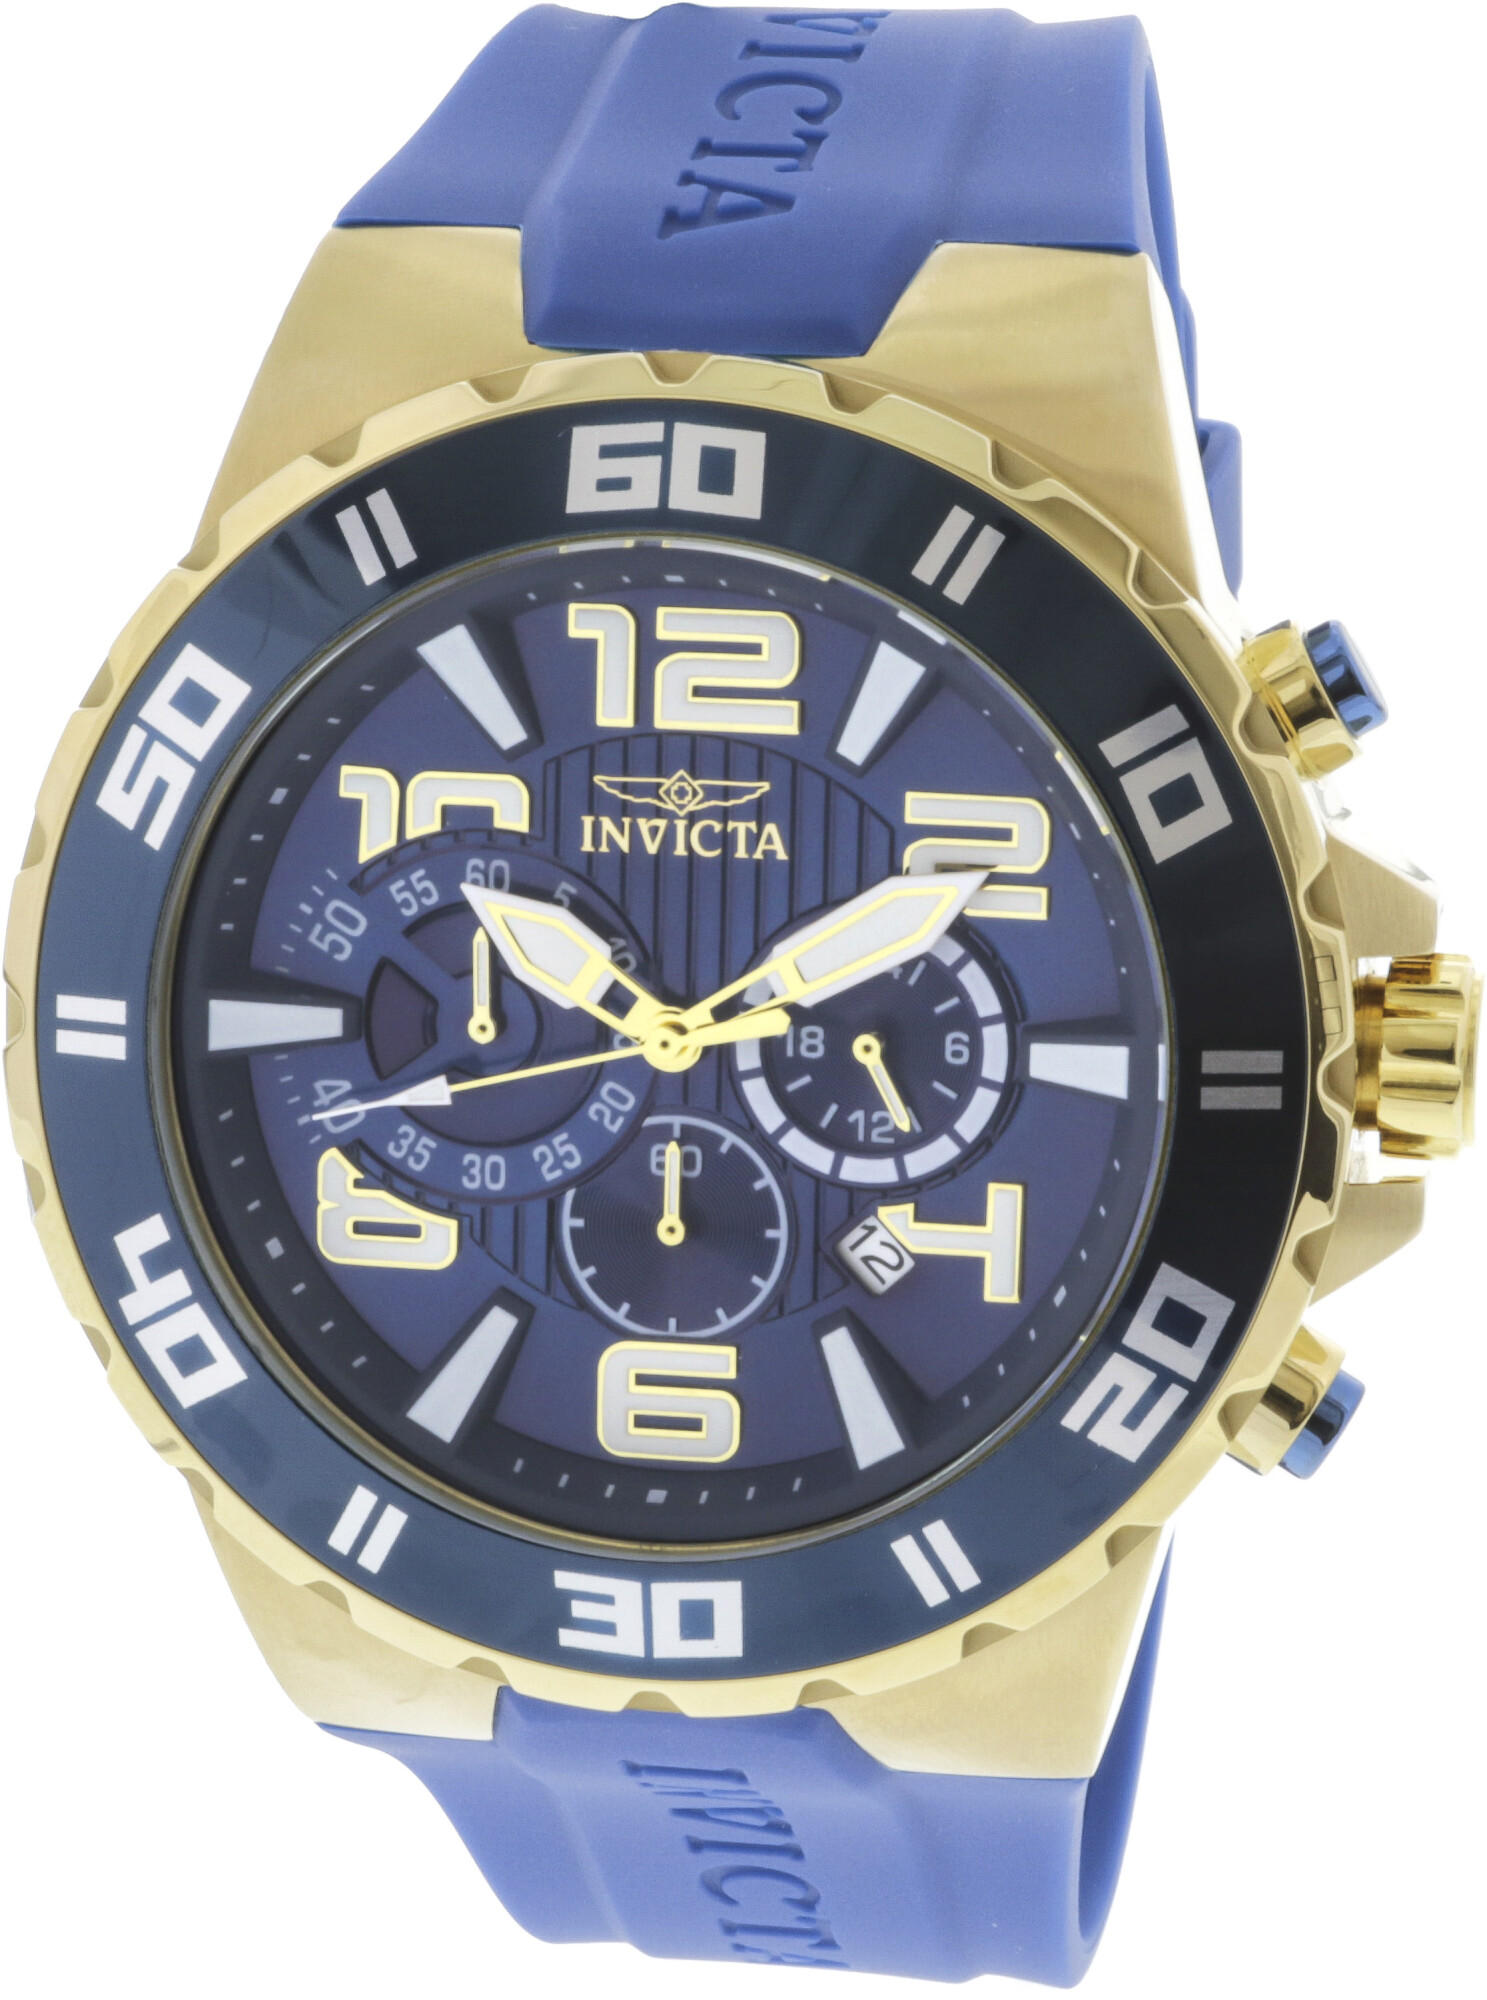 Invicta Men's 24670 Gold Silicone Japanese Chronograph Diving Watch